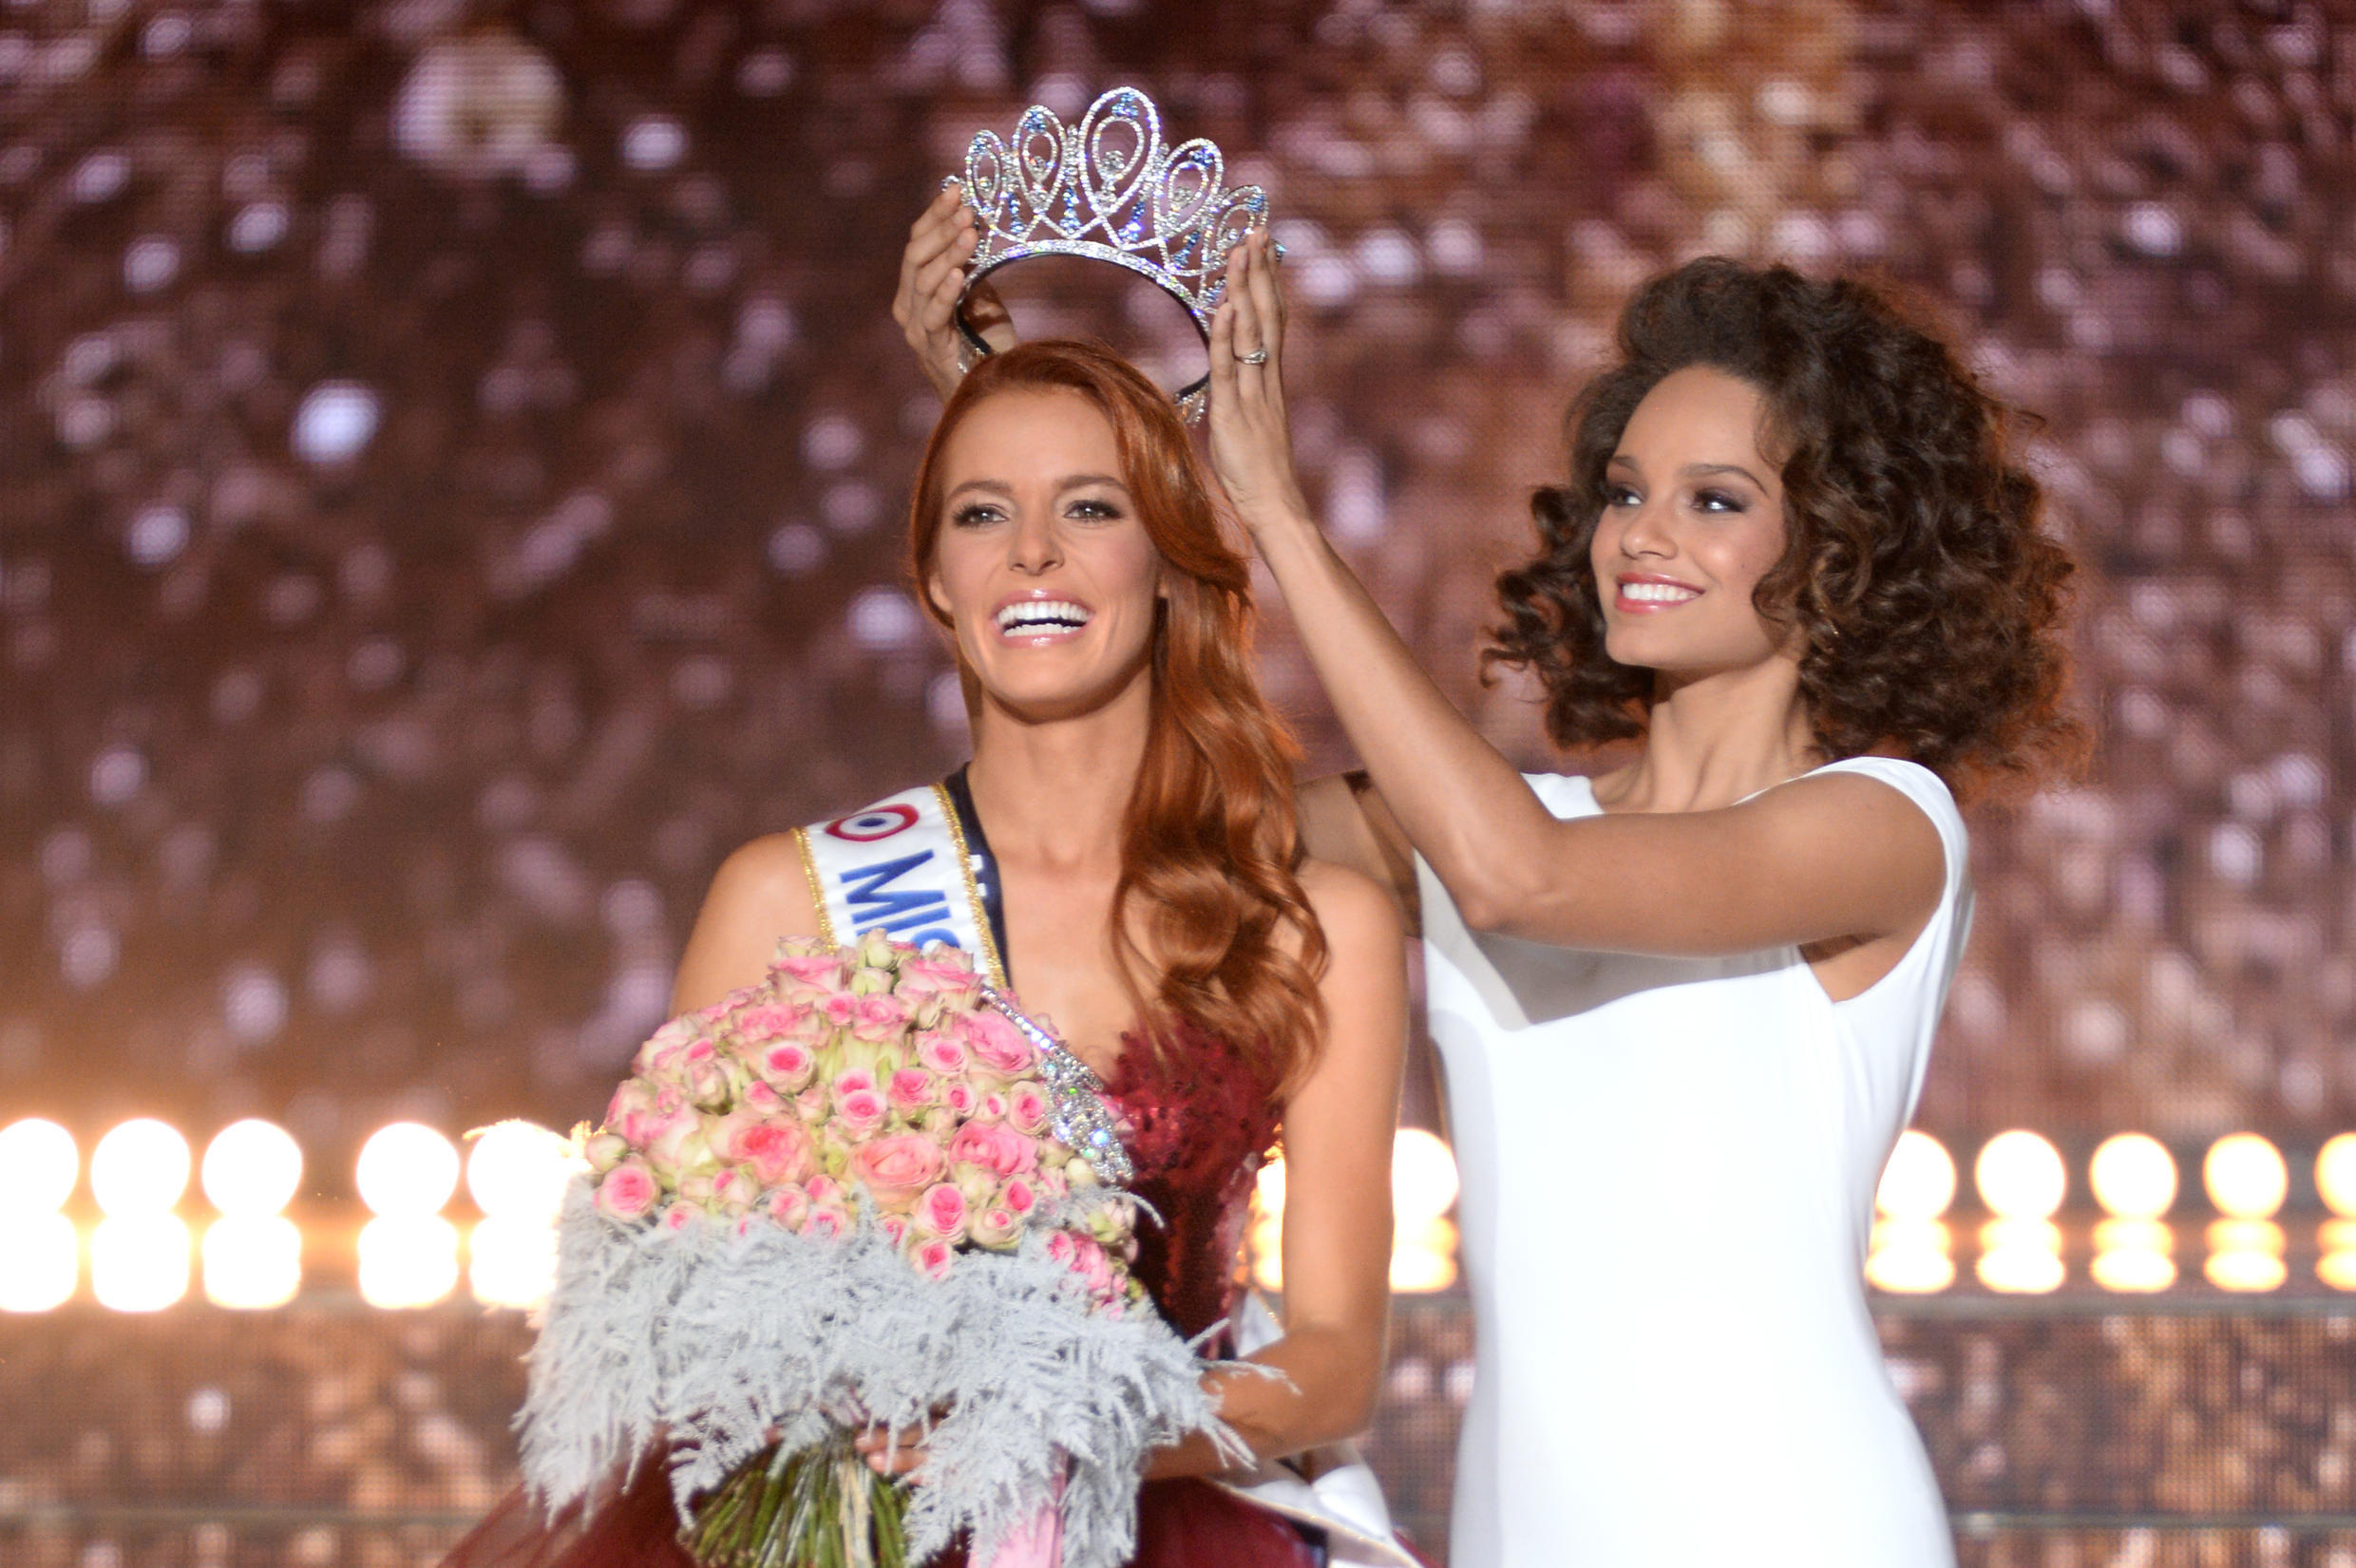 Miss France 2018 Maeva Coucke (L) is crowned by Miss France 2017 Alicia Aylies after winning the pageant in Chateauroux, central France, on December 16, 2017.